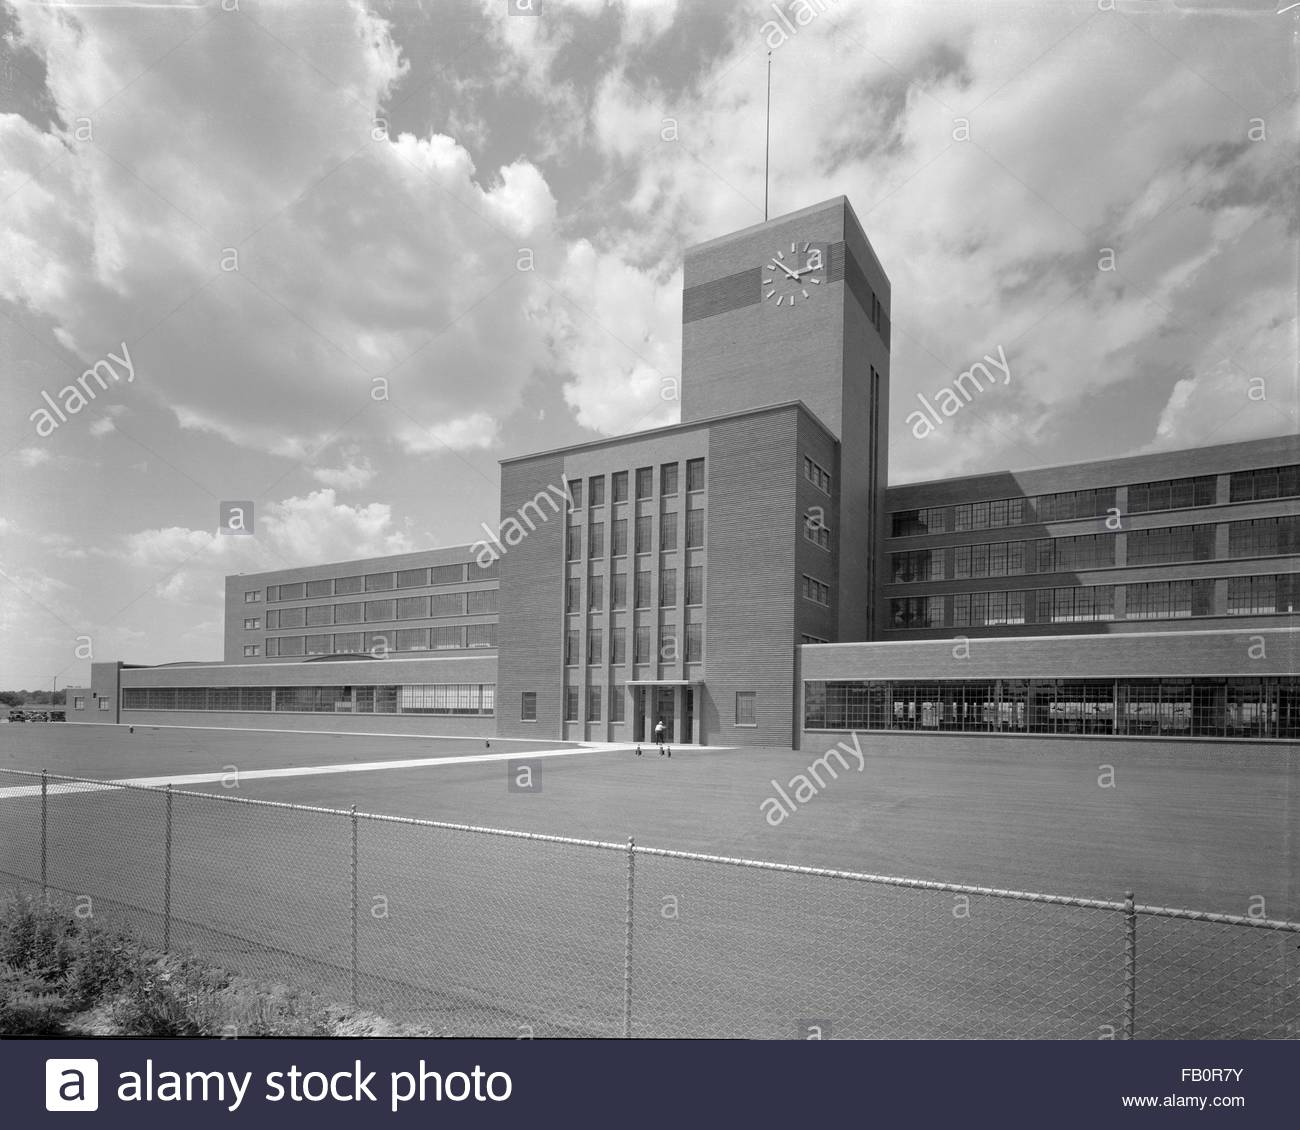 Burroughs adding machine plant in Plymouth (Mich.), 1938 July 12. Exterior, front of building. - Stock Image